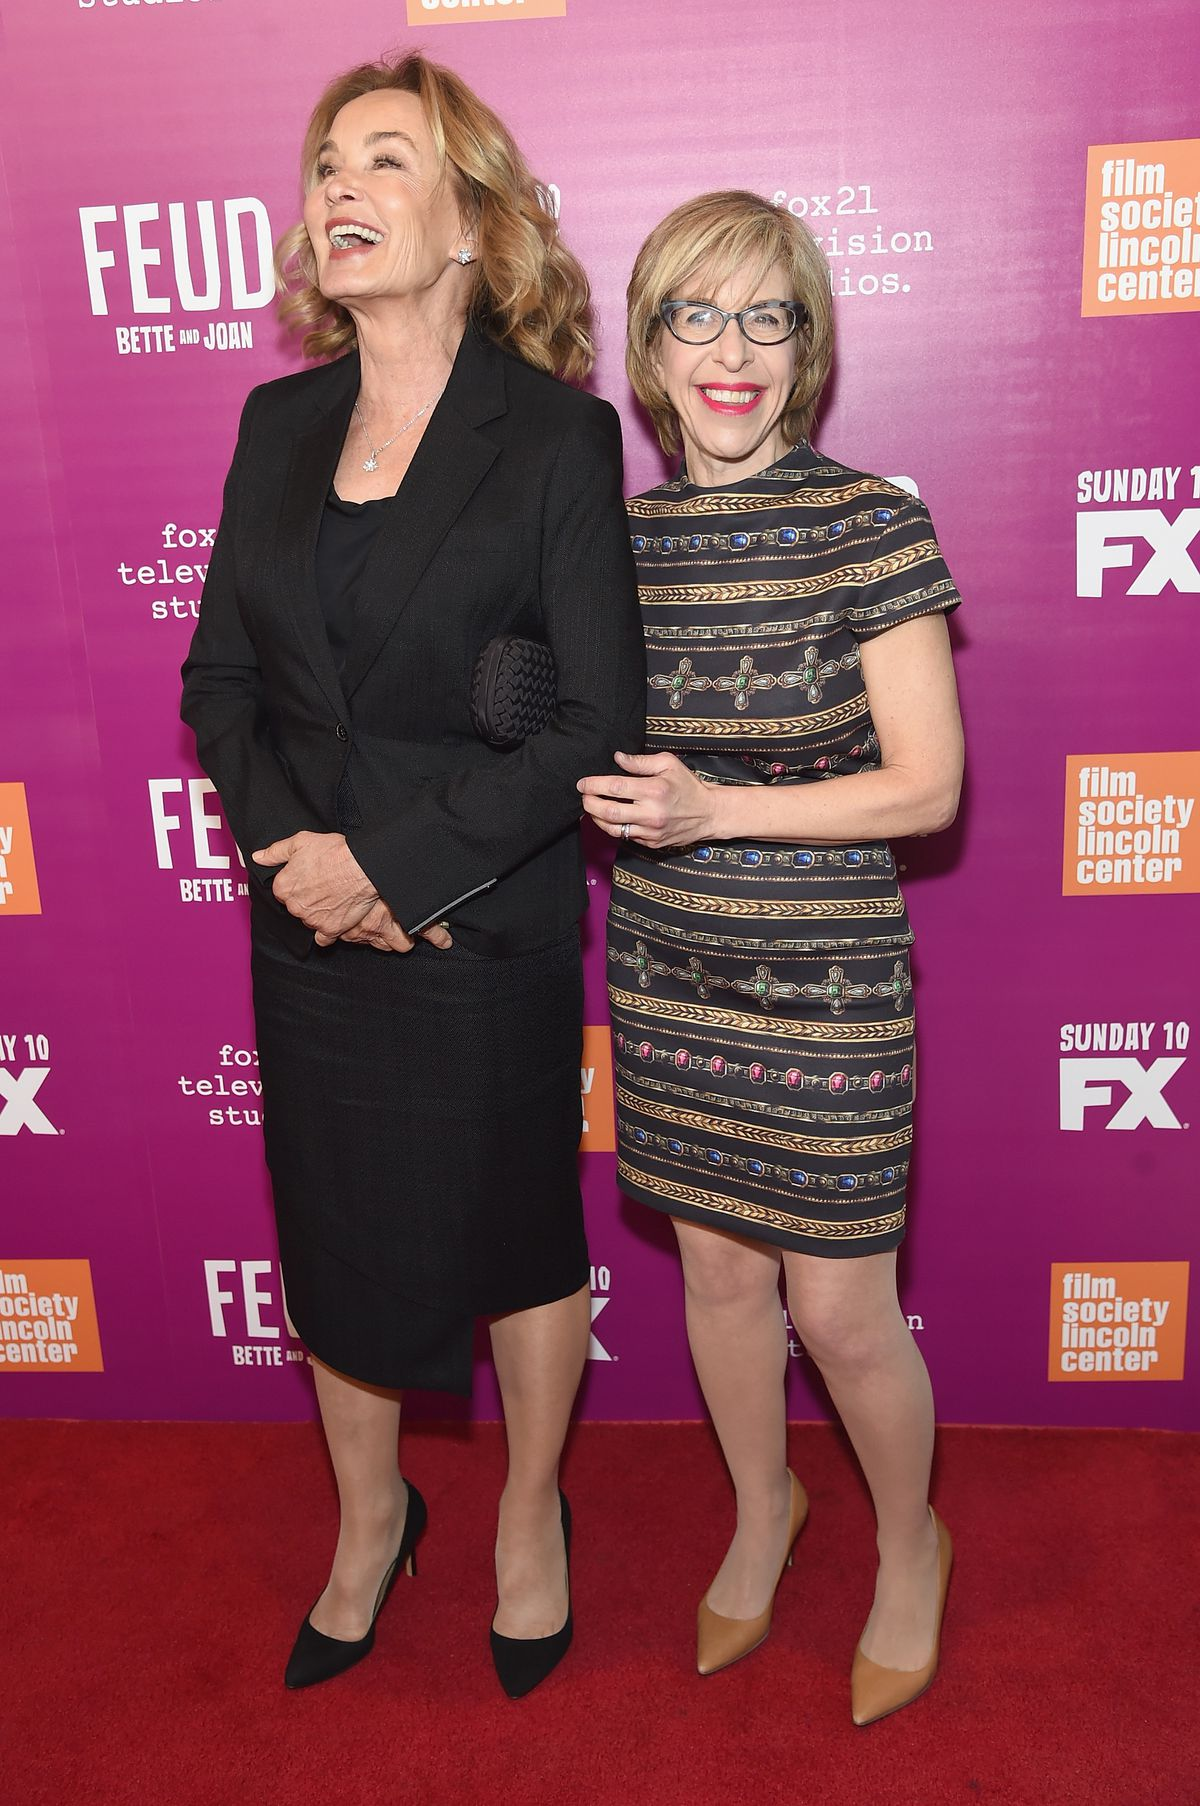 """Jessica Lange, who plays Joan Crawford on """"Feud,"""" attends a New York screening of the series with Jackie Hoffman in April 2017. 